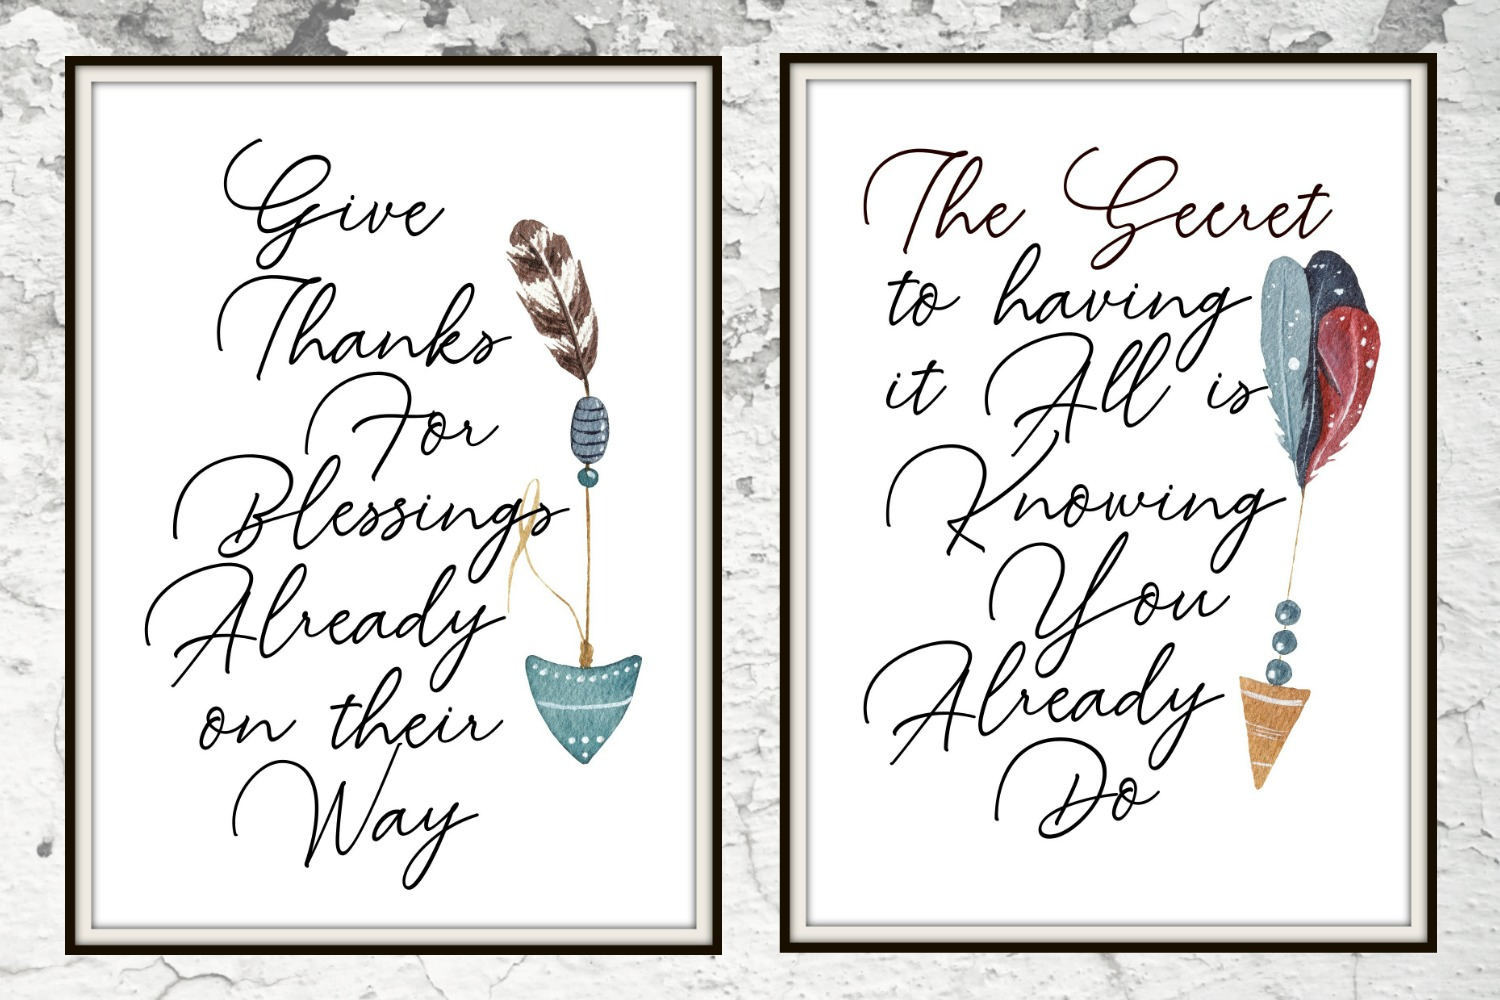 photo regarding Native American Designs Printable referred to as Indigenous American Blessings - Absolutely free Printable Artwork and Wallpaper